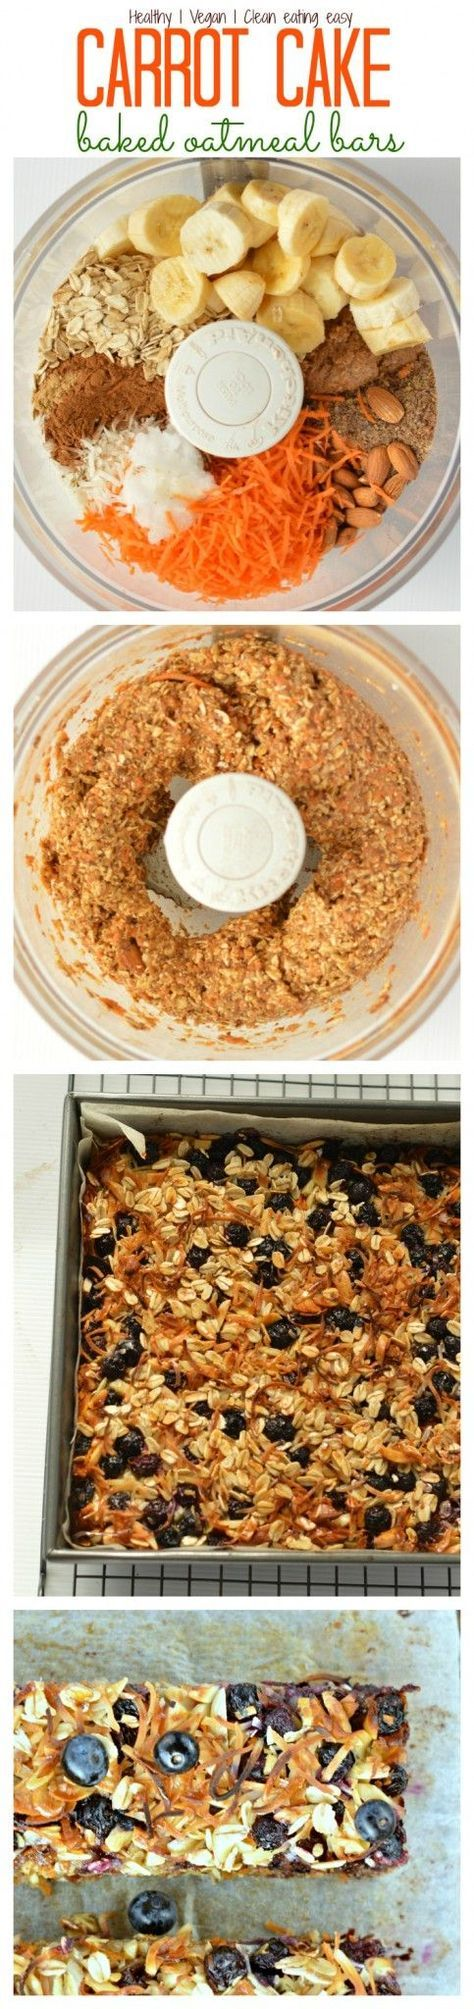 25+ best ideas about Oatmeal Bars on Pinterest | Oatmeal ...